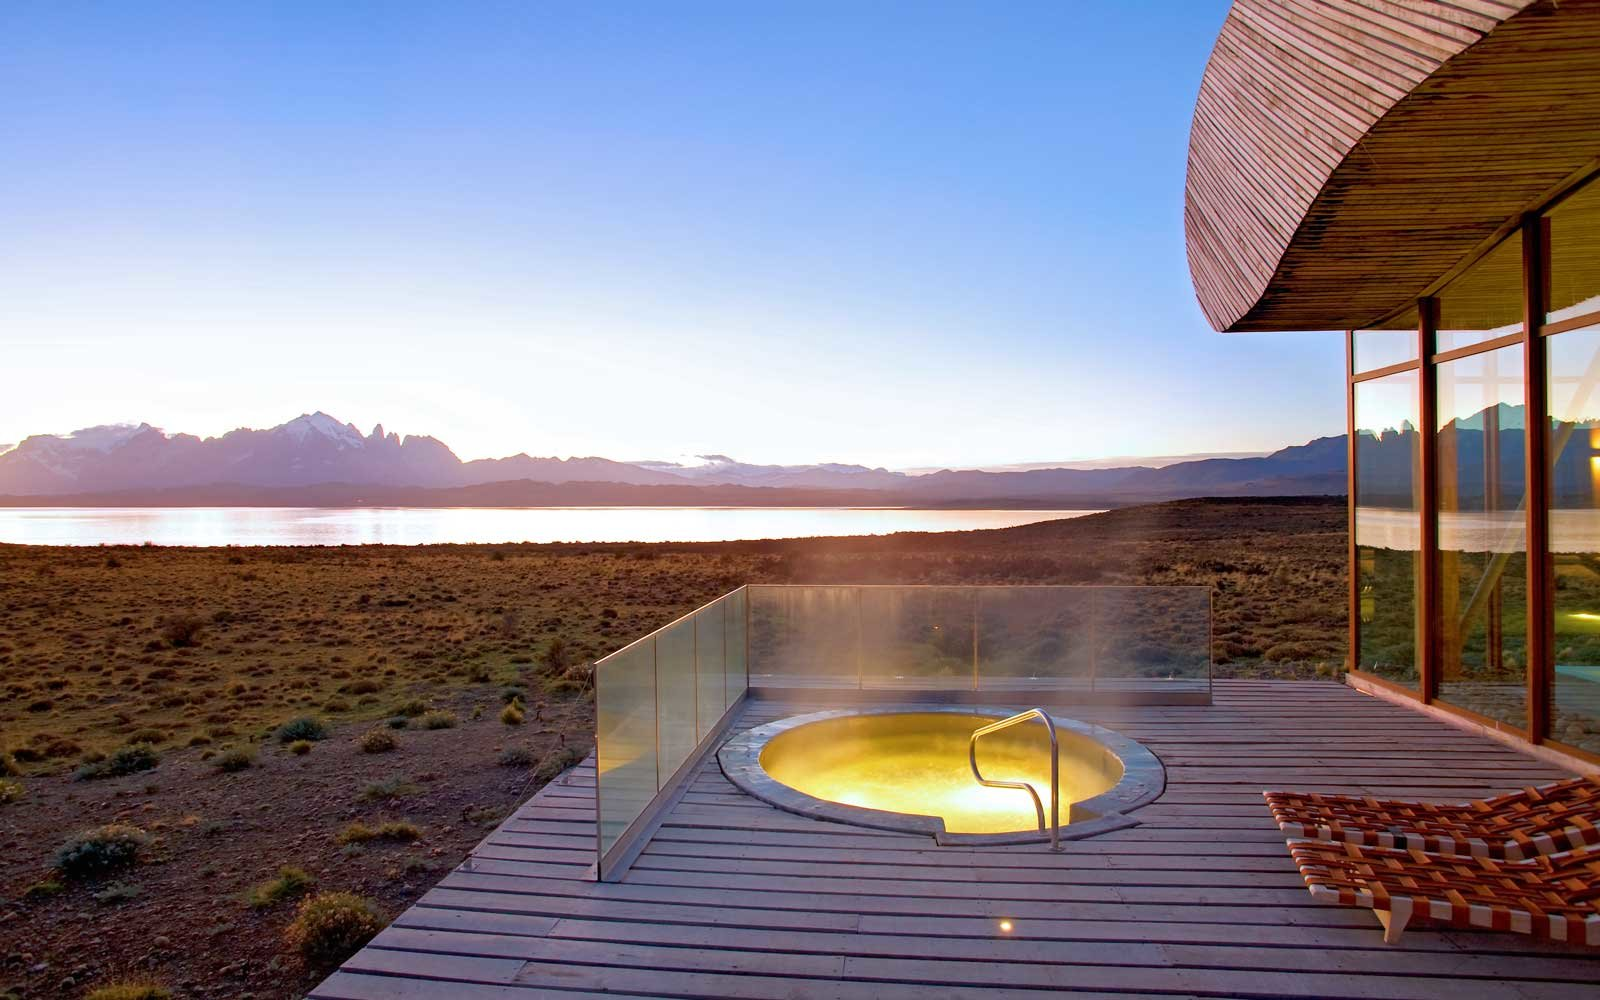 7. Tierra Patagonia Hotel & Spa, Torres del Paine, Chile